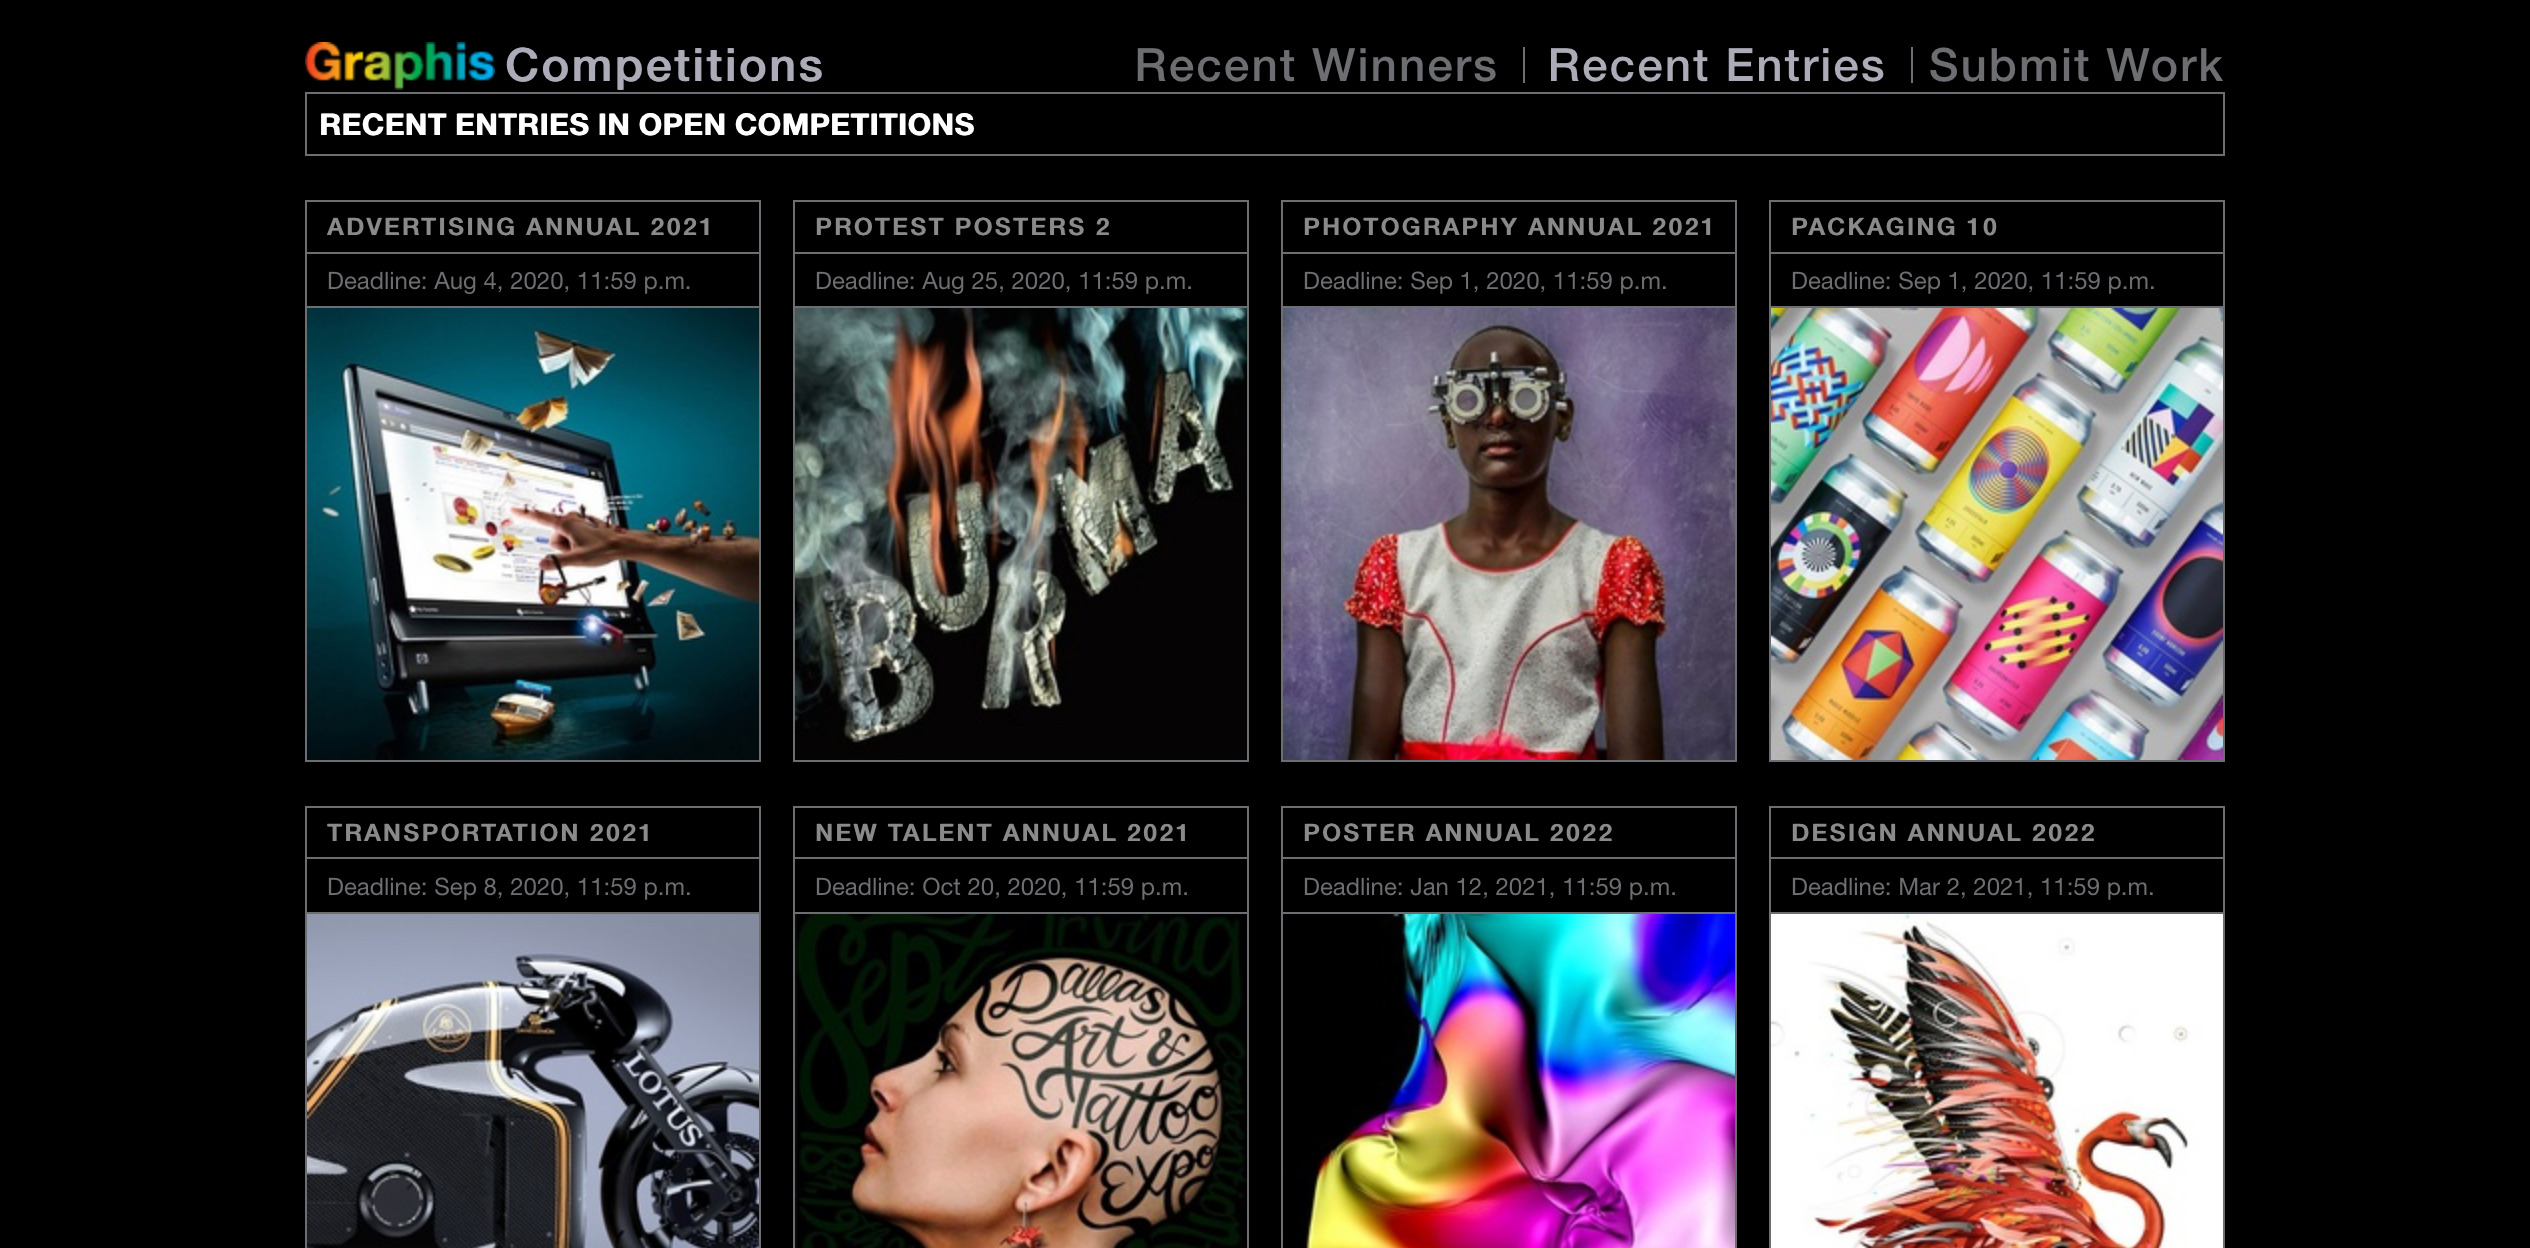 food photography awards contest, graphis competitions, phoode